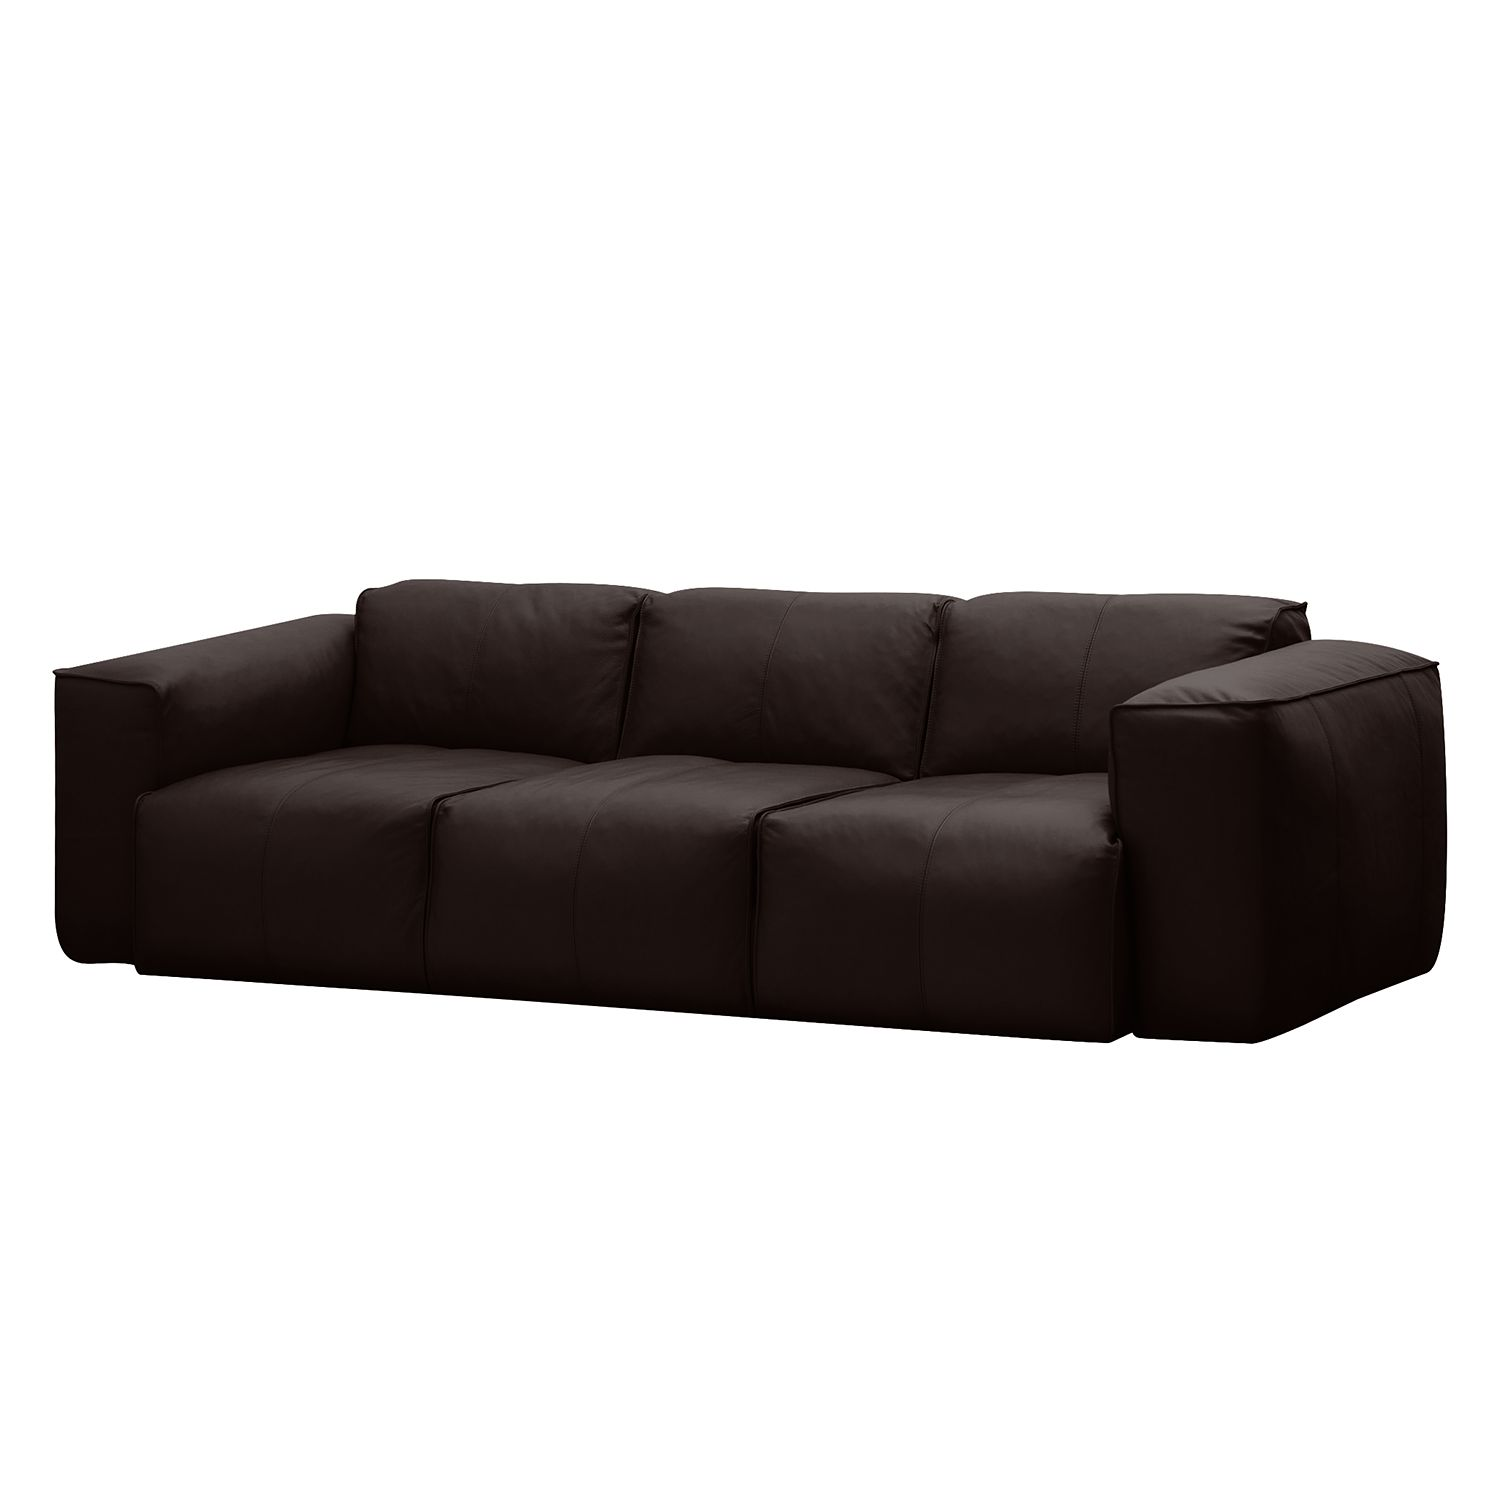 sofa hudson i 3 sitzer echtleder echtleder neka dunkelbraun g nstig. Black Bedroom Furniture Sets. Home Design Ideas